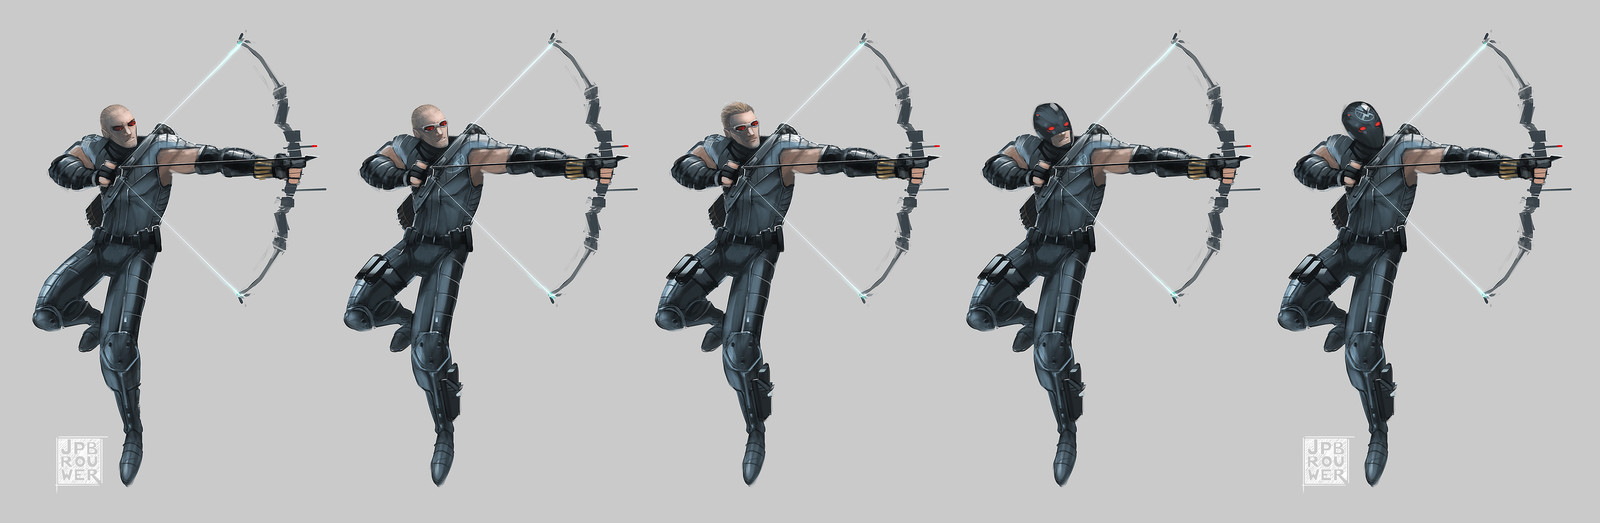 Hawkeye character and costume concepts